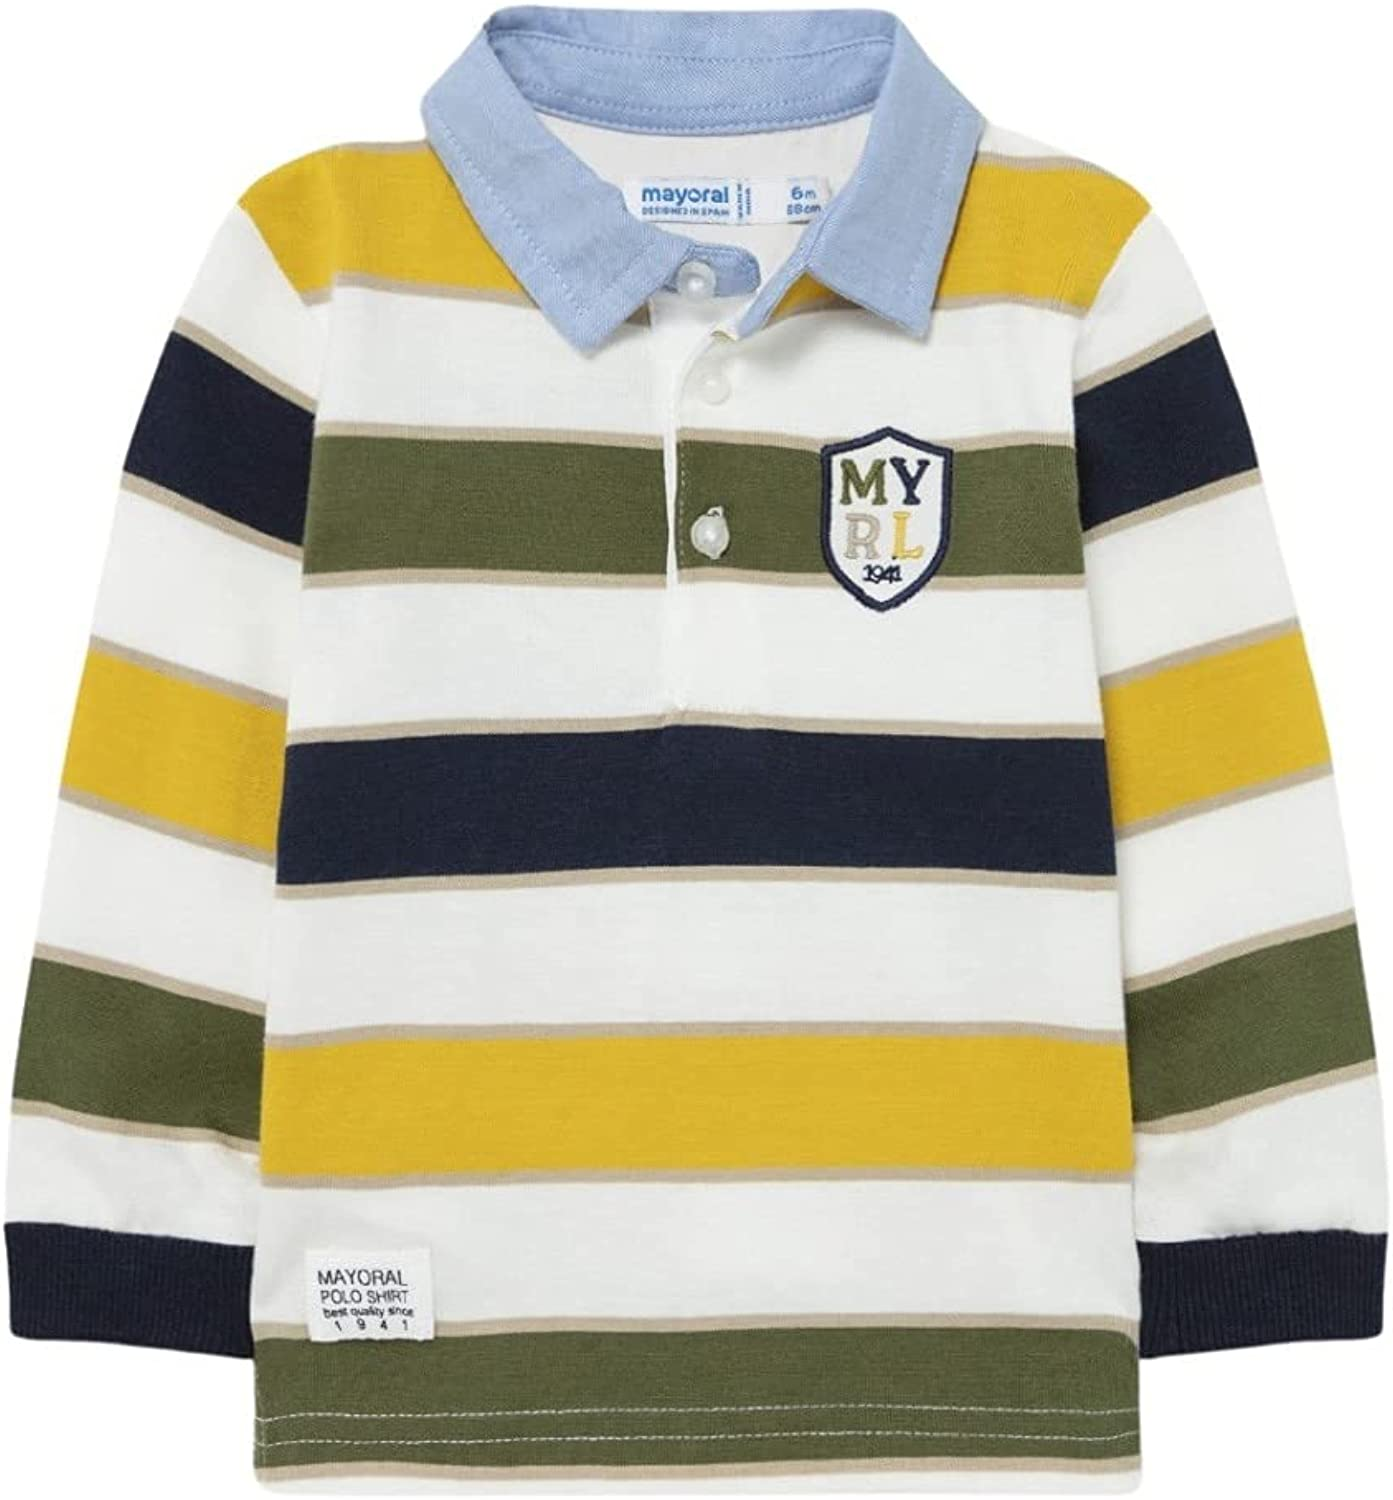 Mayoral - Superlatite Stripes Indianapolis Mall Polo for 2140 Gold Baby-Boys